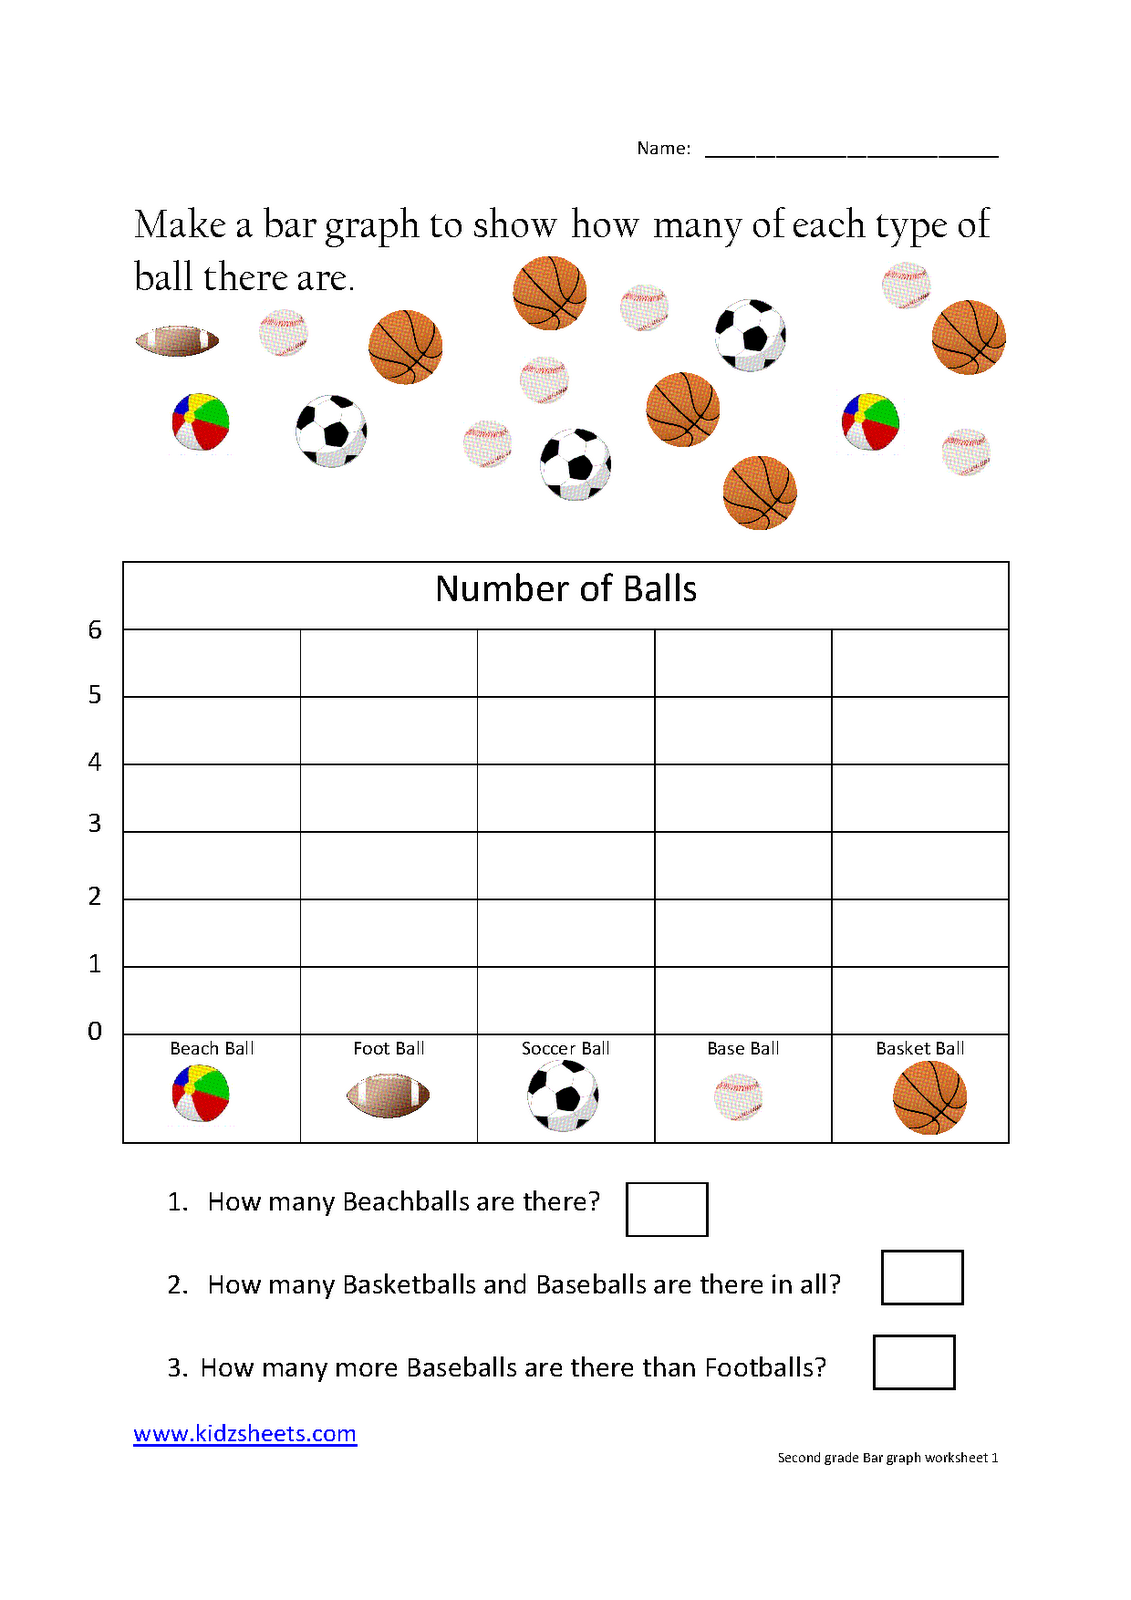 Kidz Worksheets Second Grade Bar Graph Worksheet1 – Free Printable Second Grade Worksheets